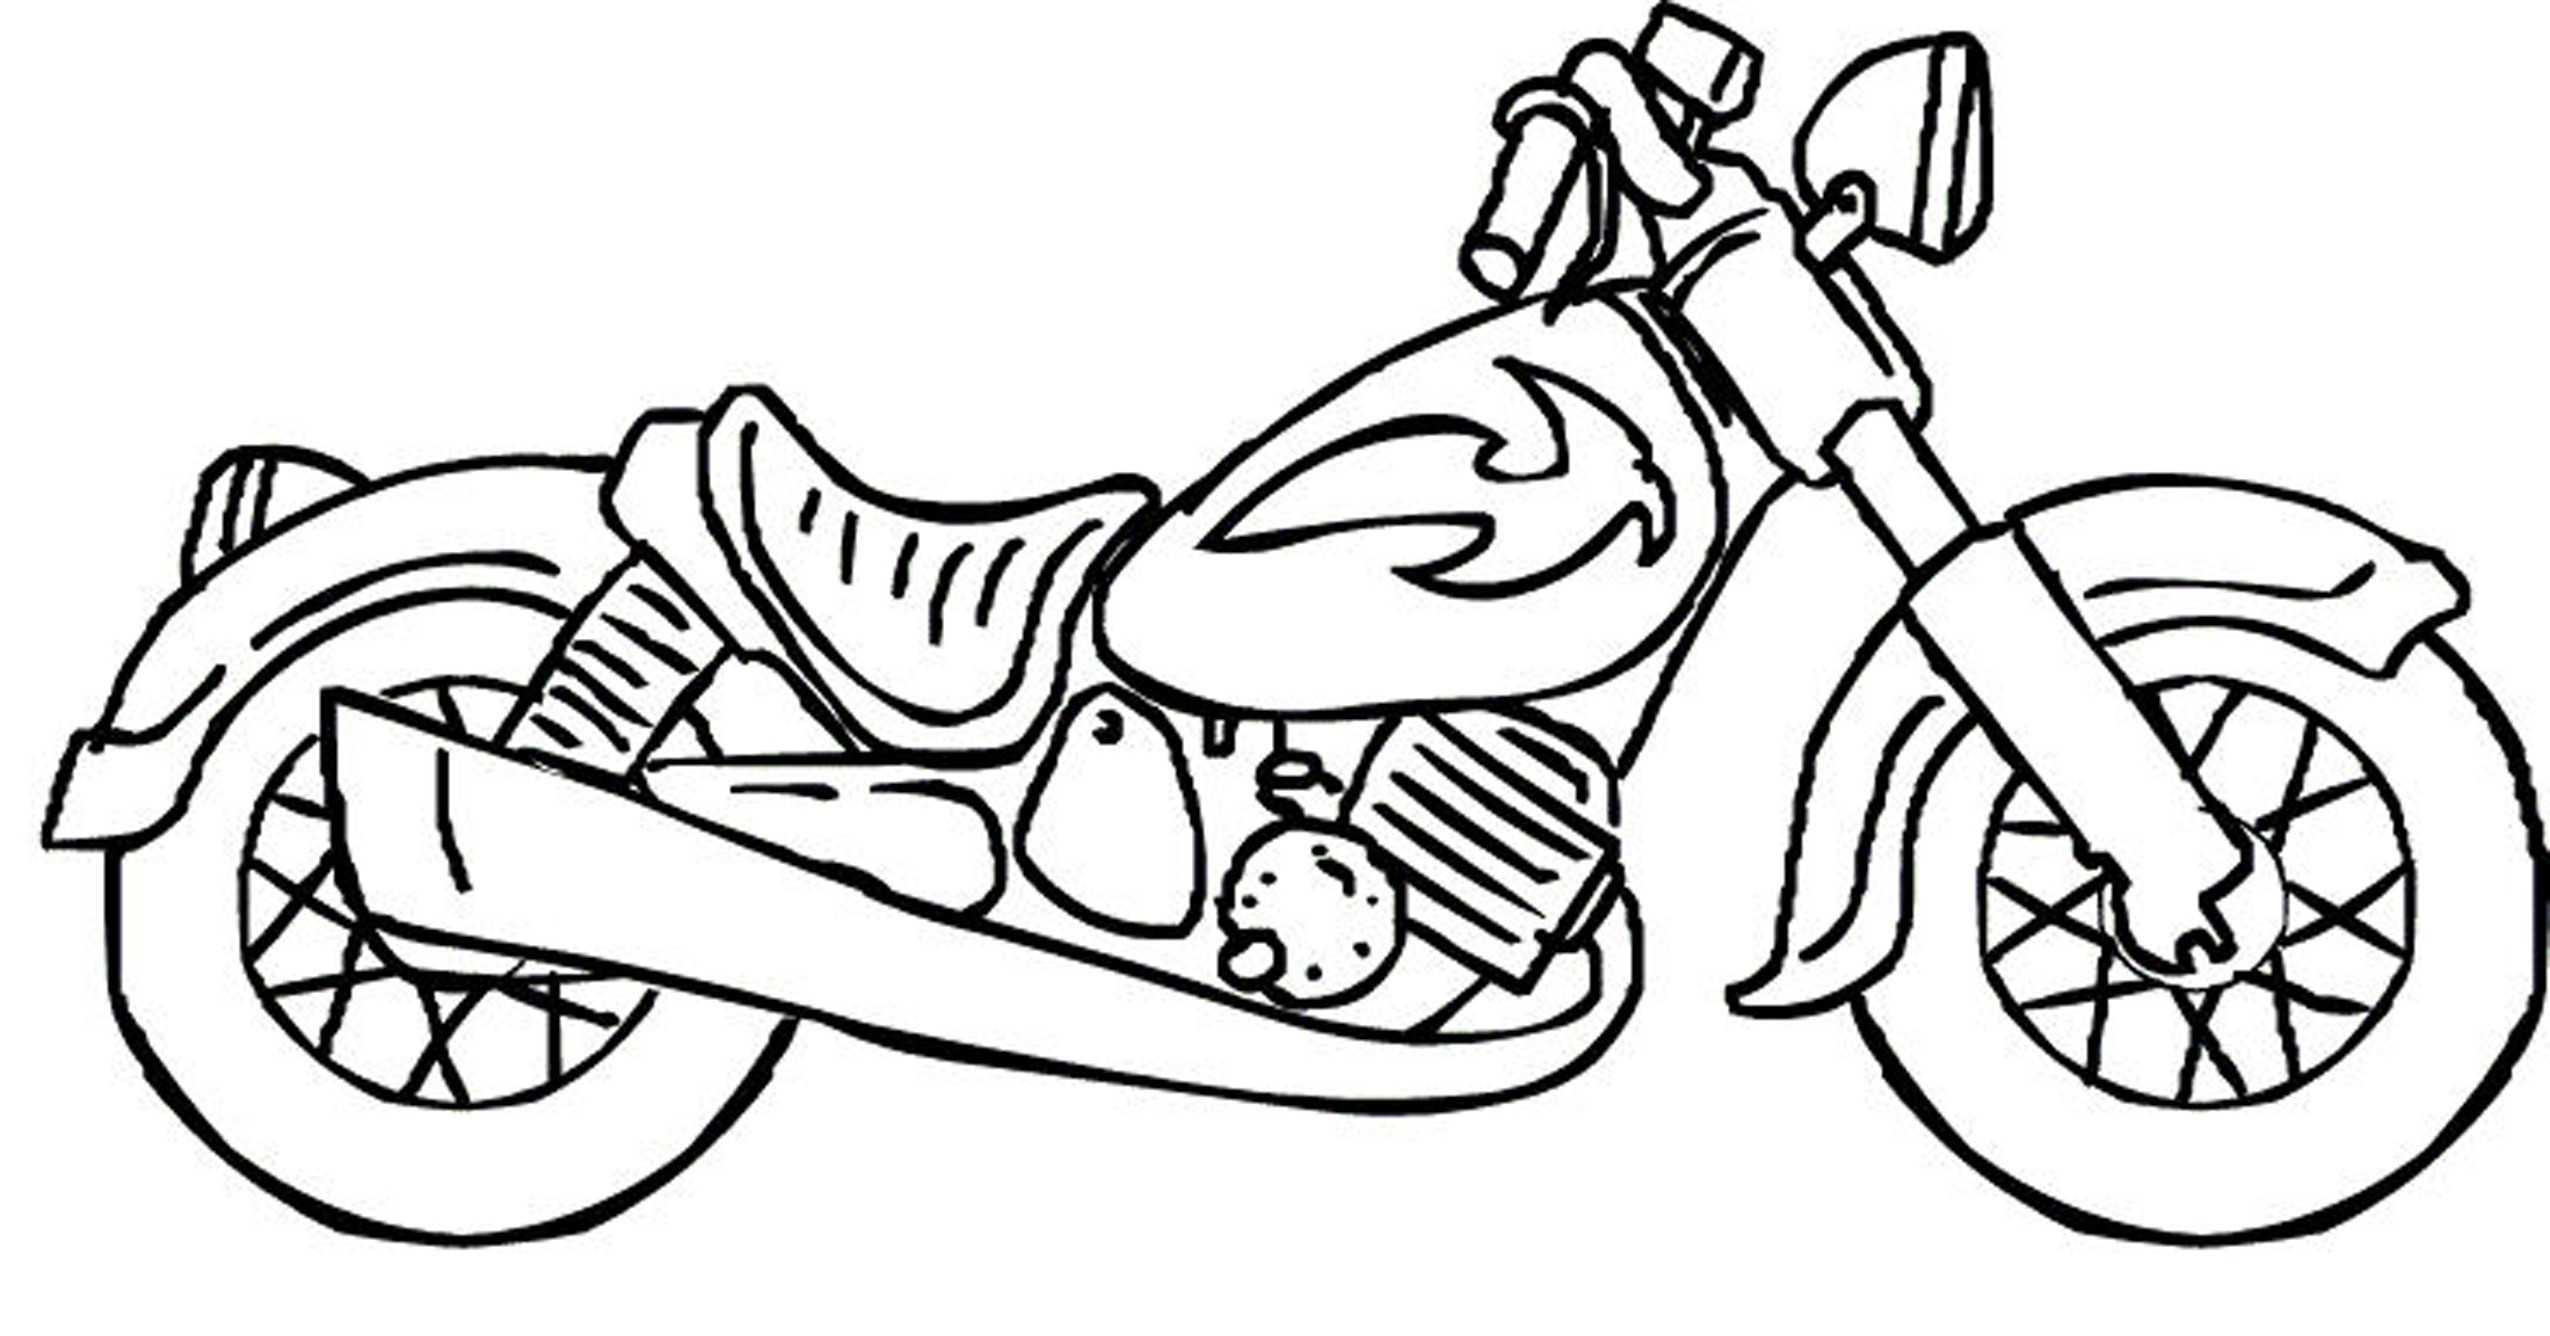 2550x1336 Police Motorcycle Coloring Page Free Printable Pages Inside Veles